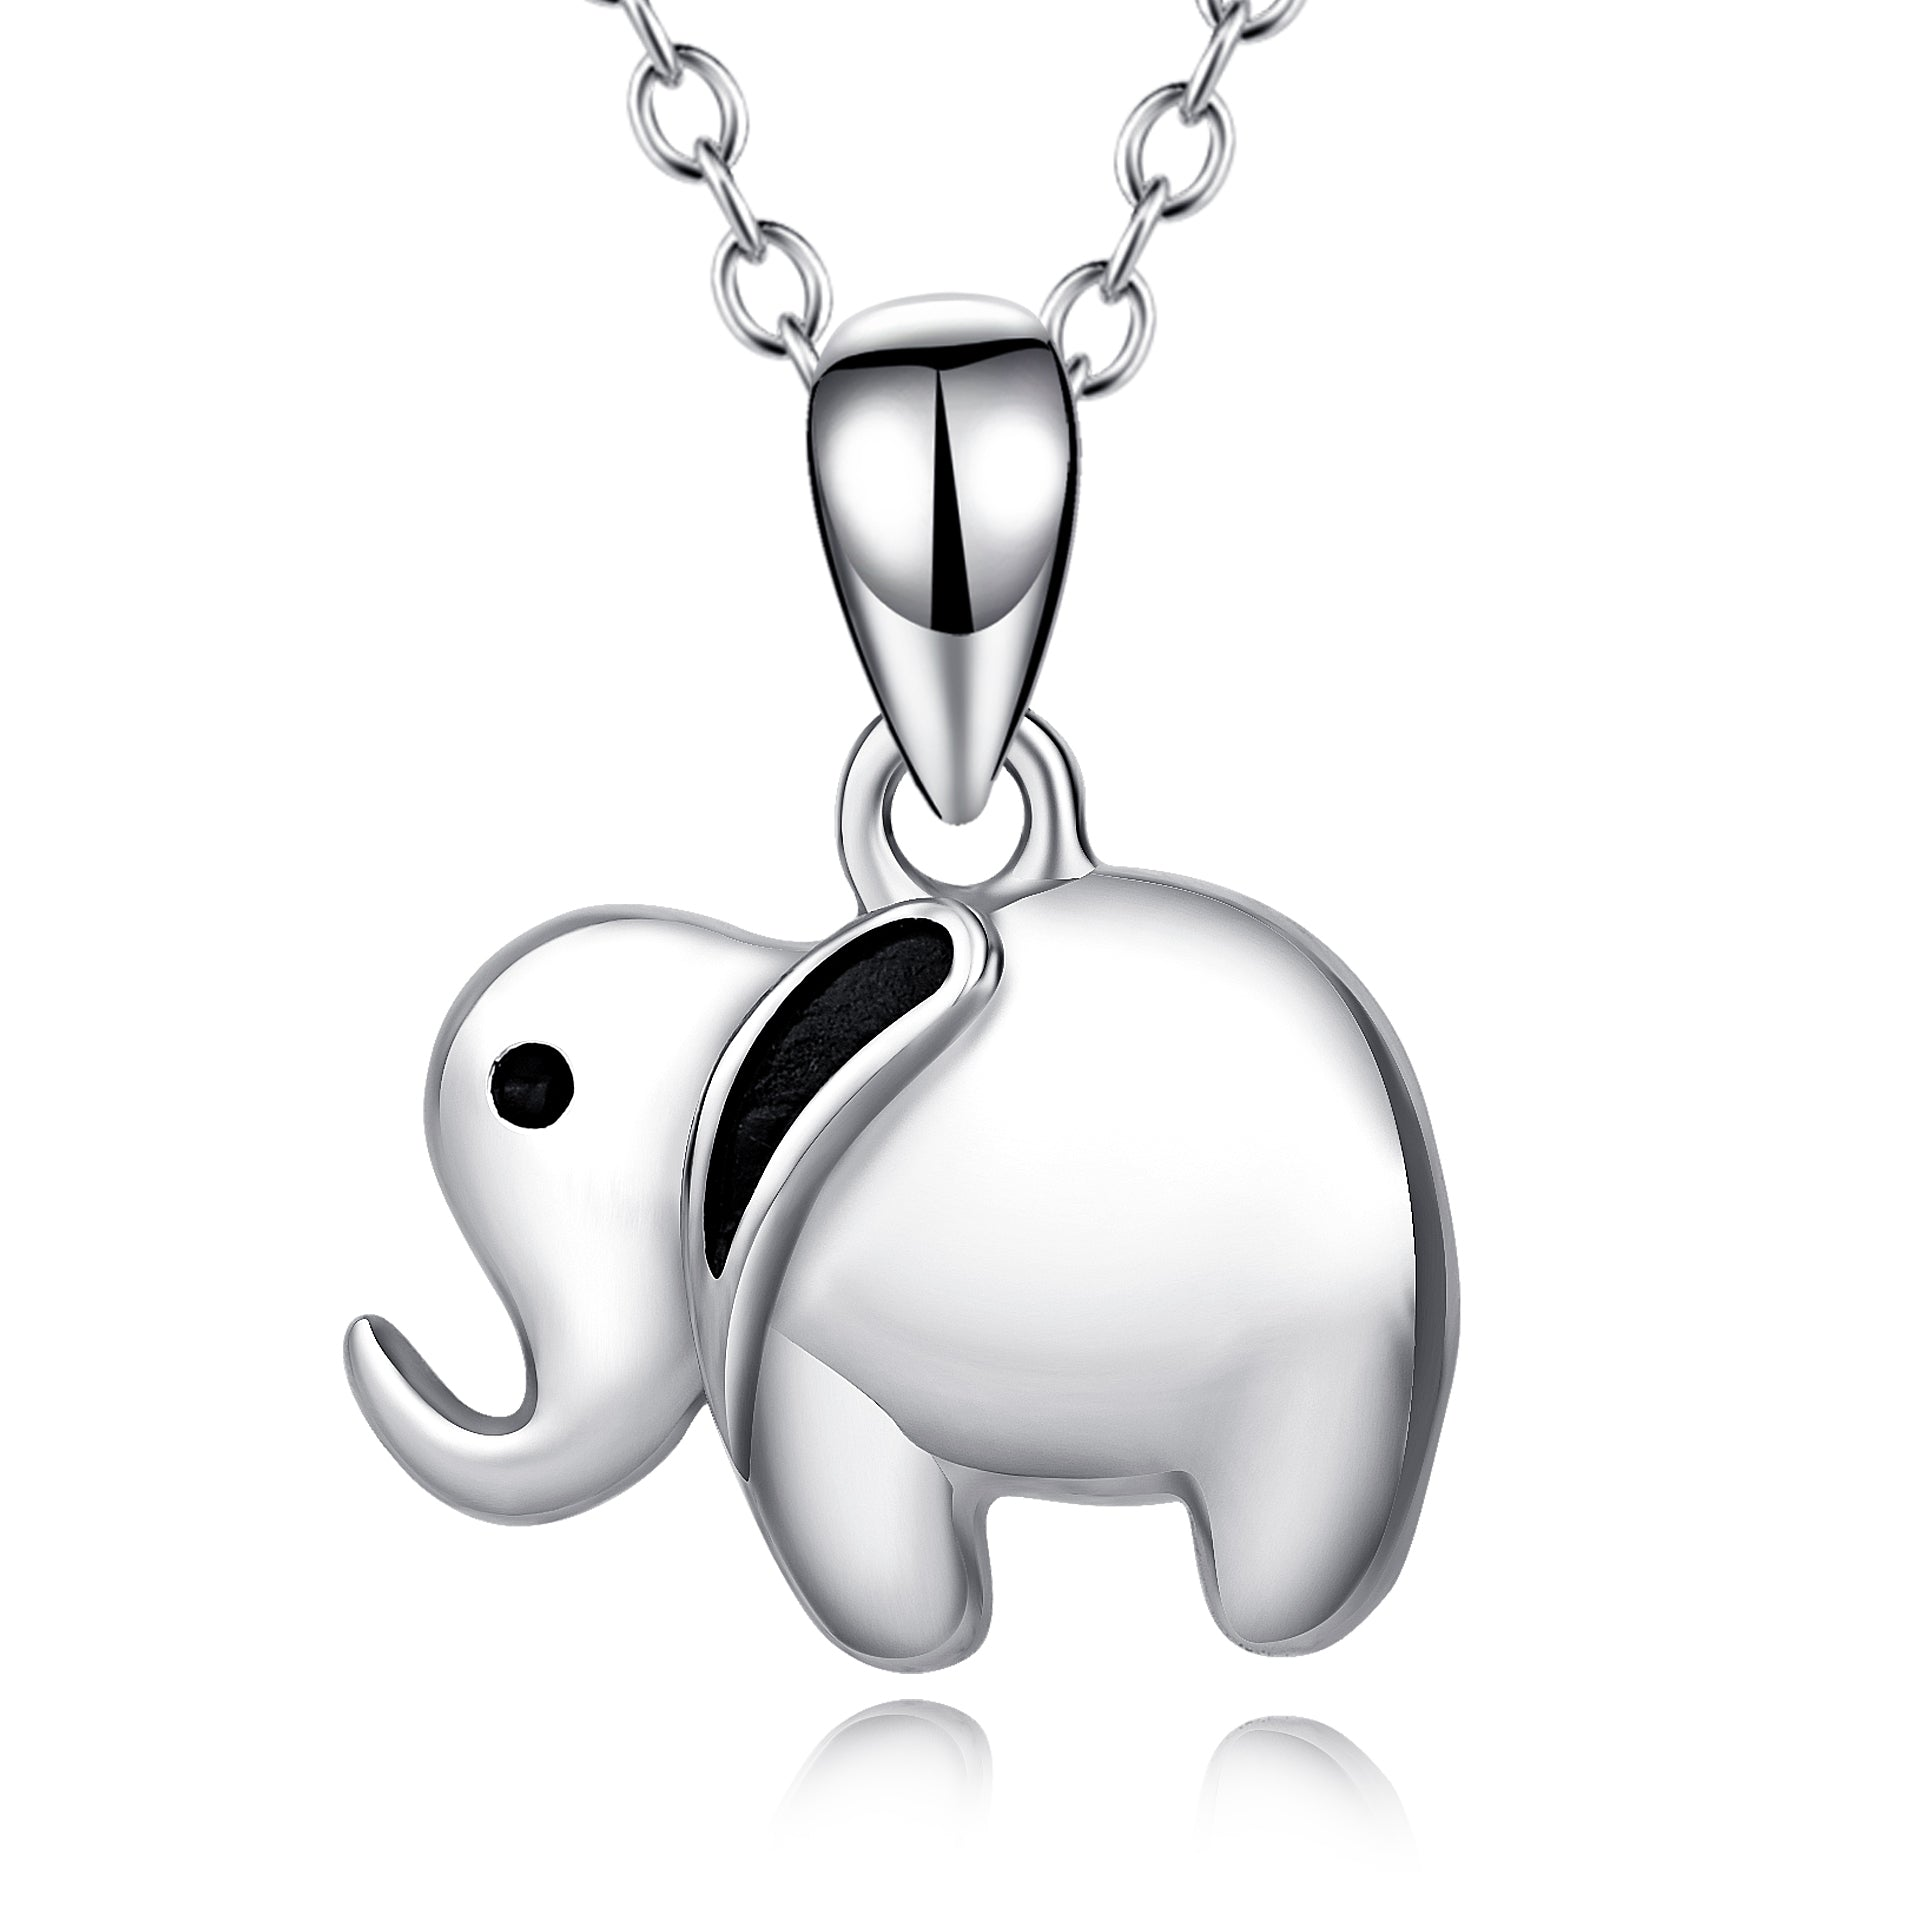 Cute Animal Jewelry Silver Design Elephant Chain Necklace Wholesale